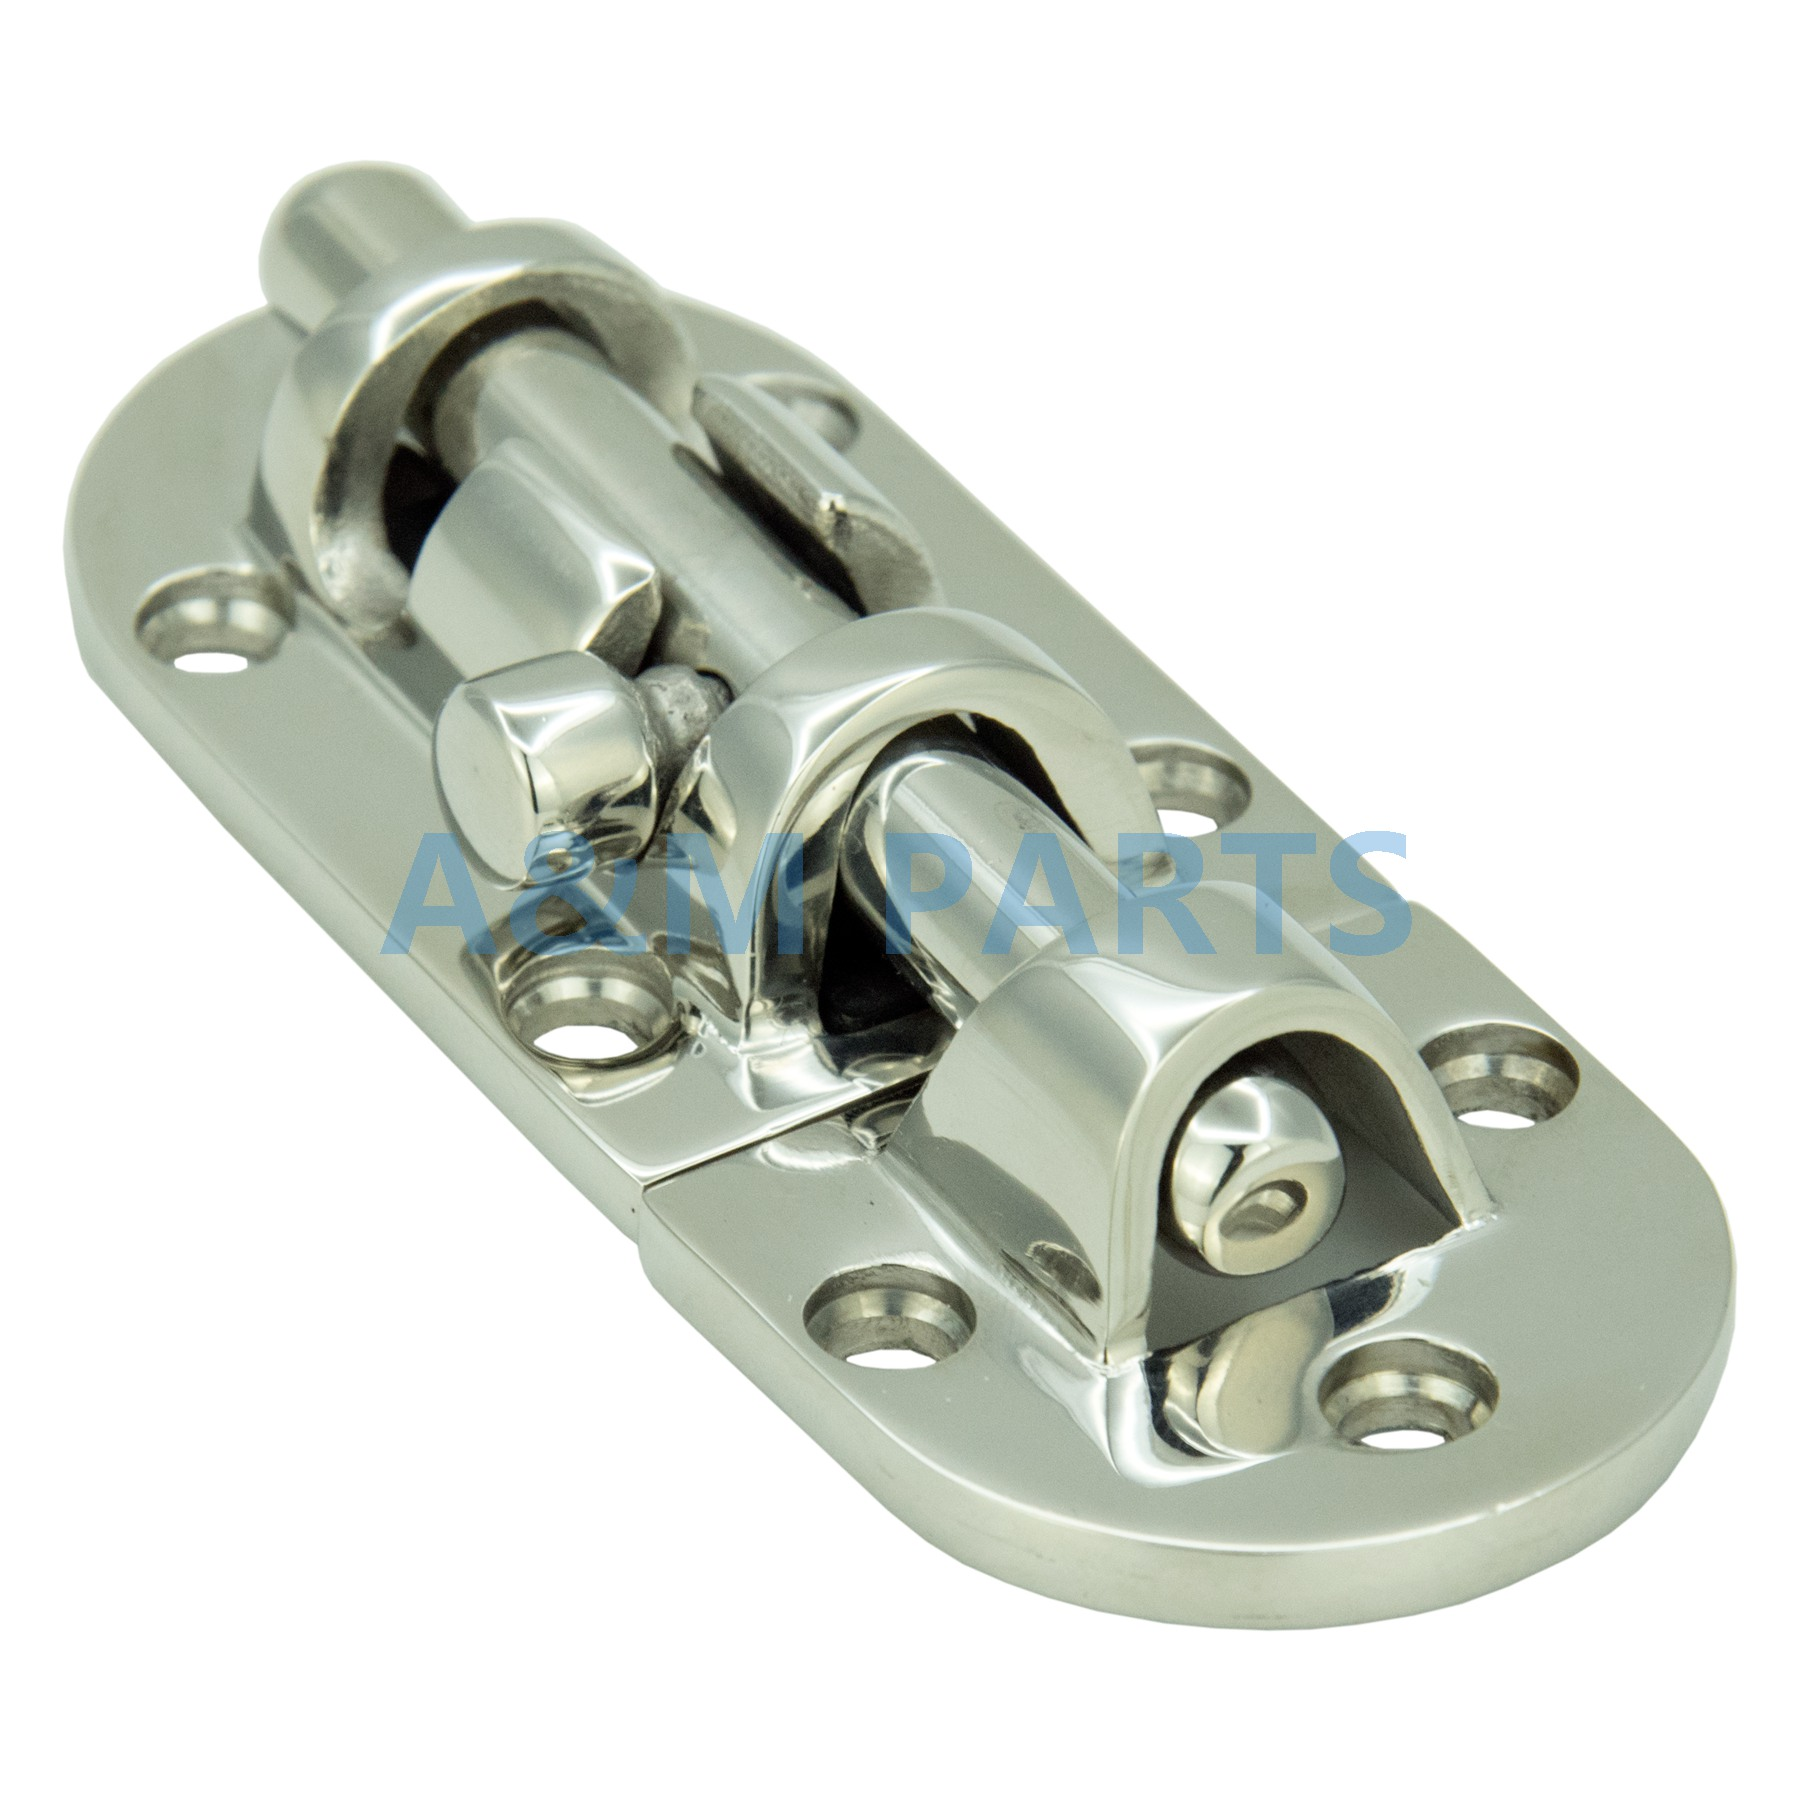 anti door p doors steel cabin fastener stainless boat latch marine asp rattle